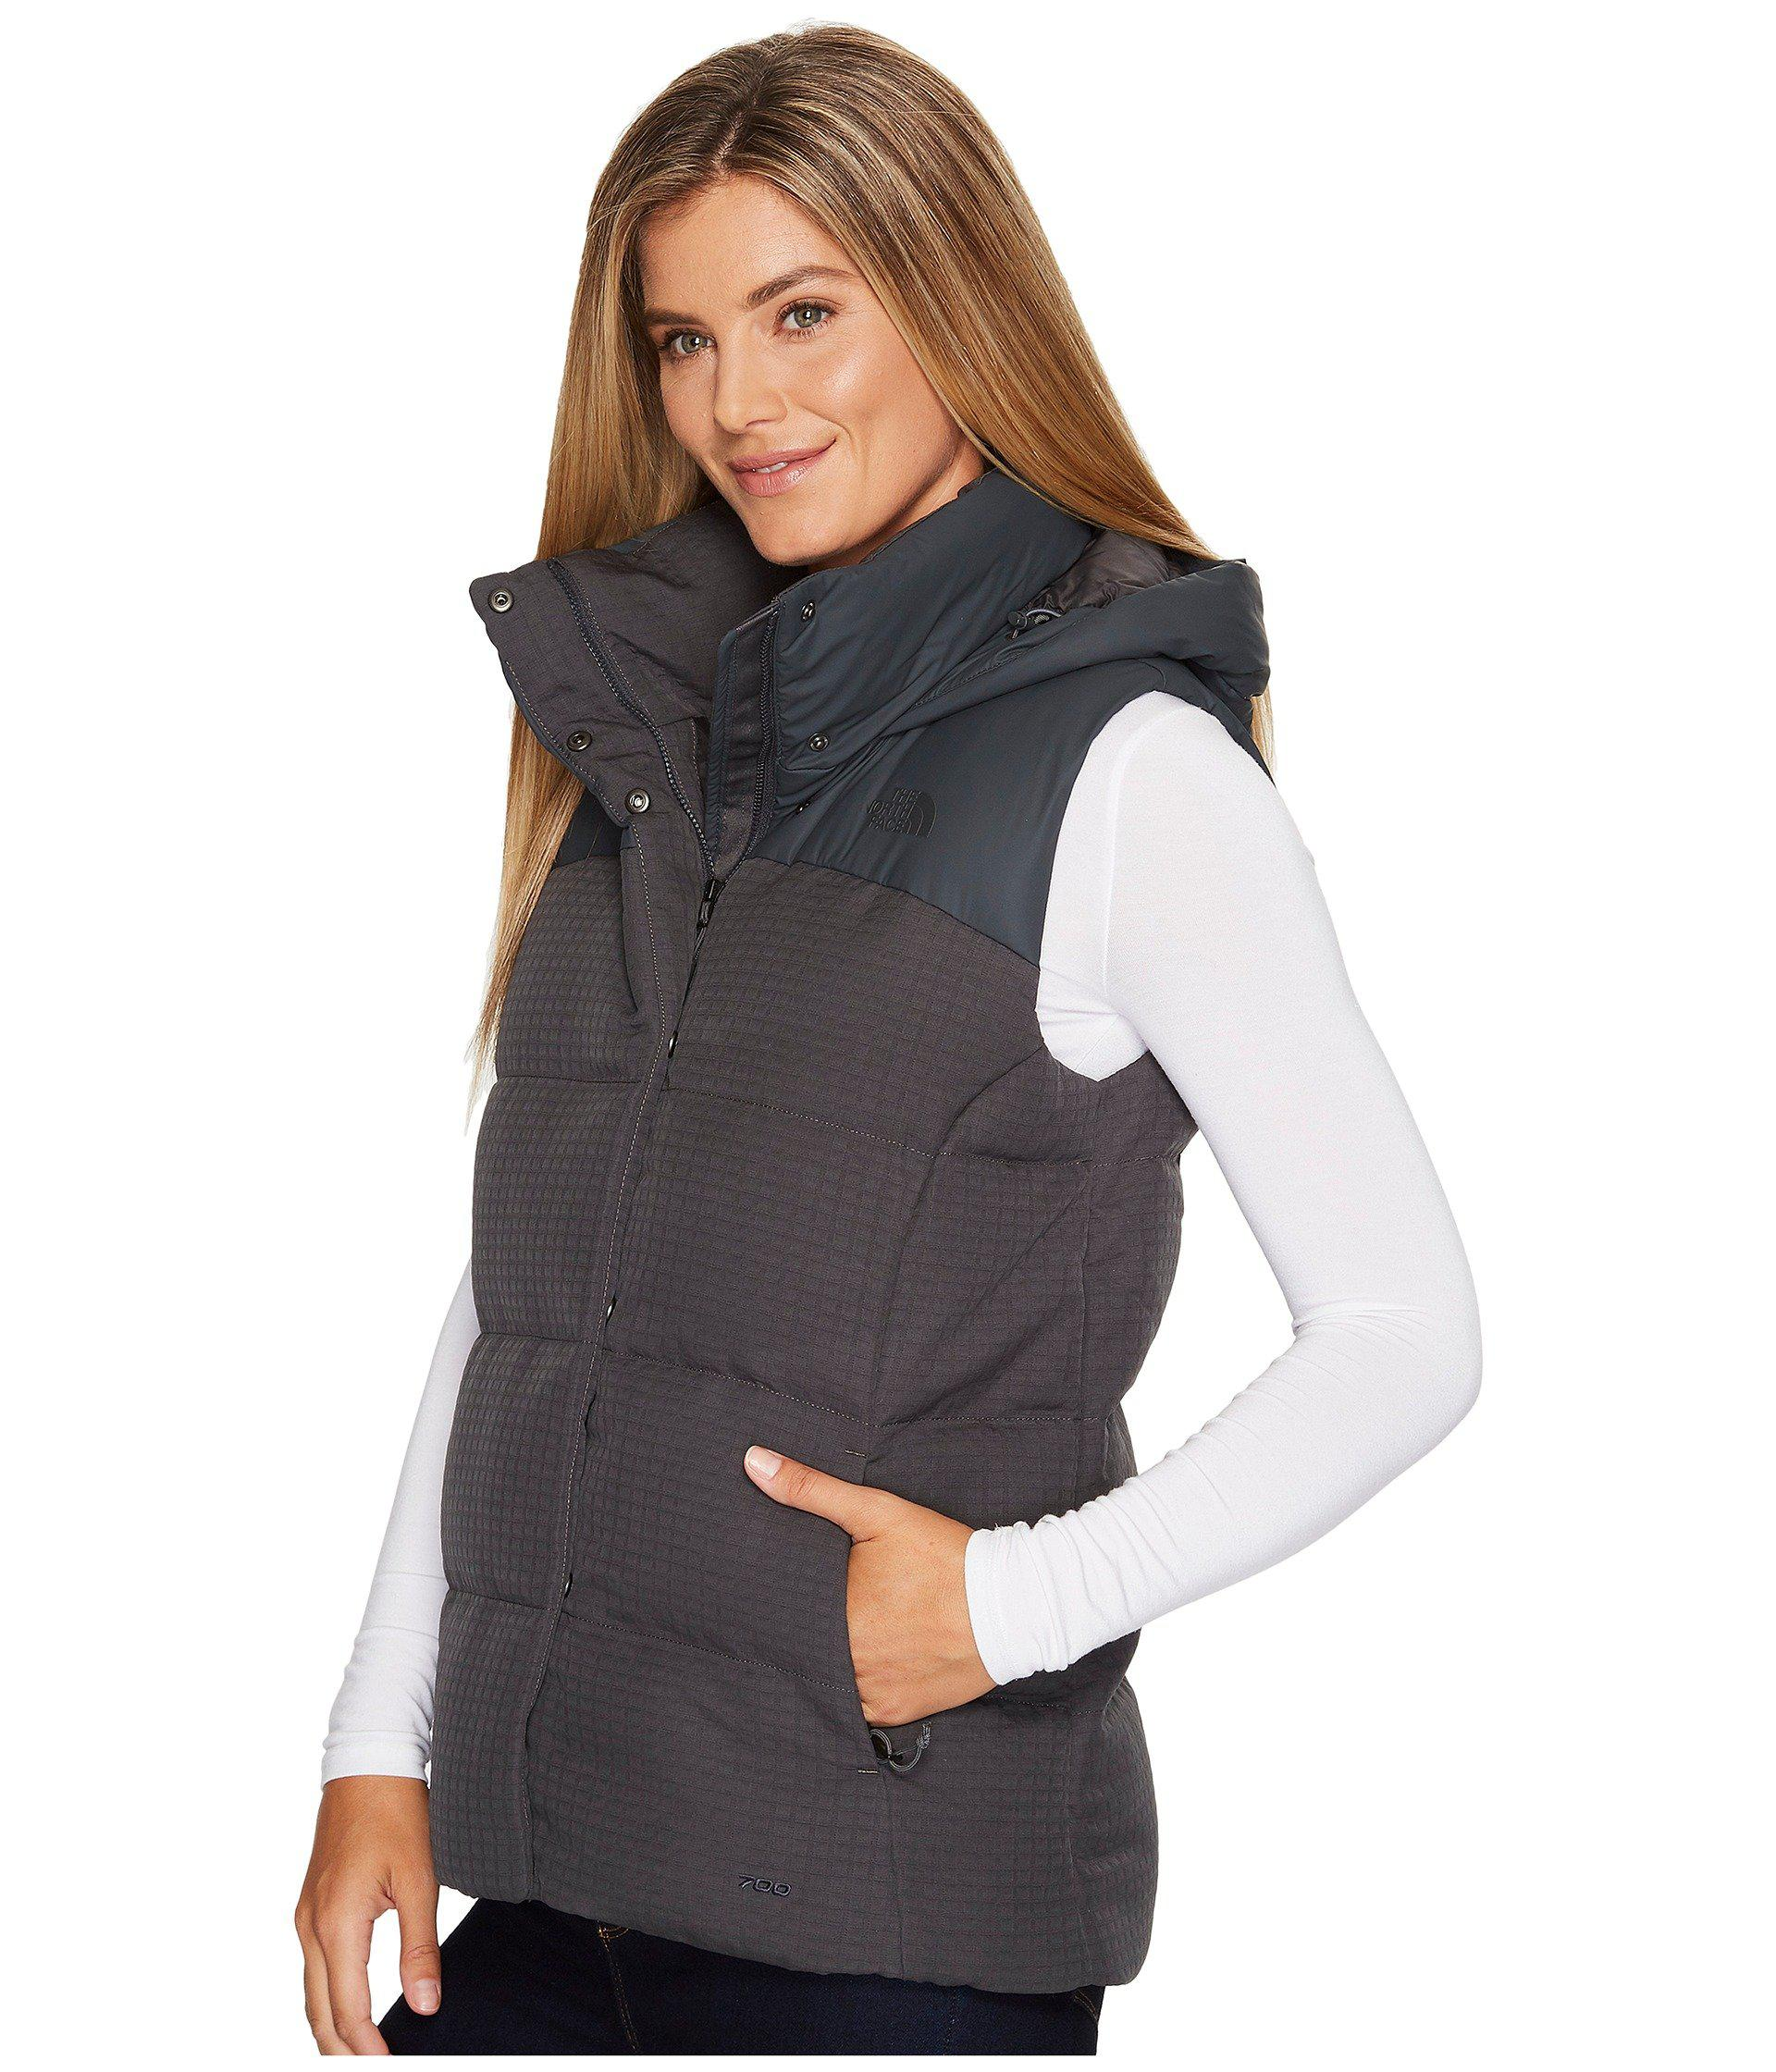 fde44aa3f006 Lyst - The North Face Novelty Nuptse Vest in Gray - Save 26%